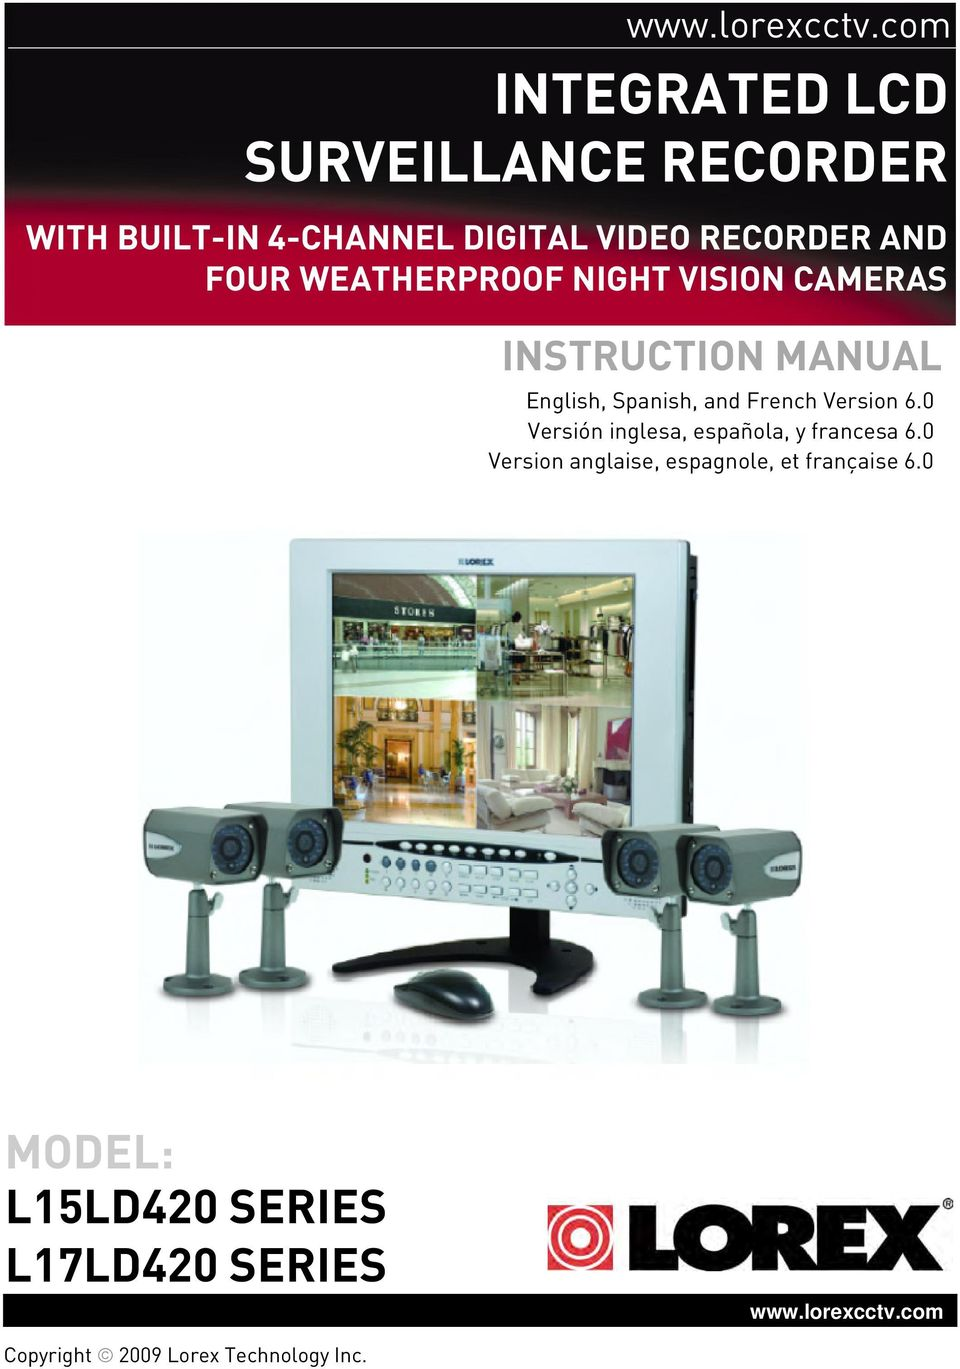 WEATHERPROOF NIGHT VISION CAMERAS INSTRUCTION MANUAL English, Spanish, and French Version 6.